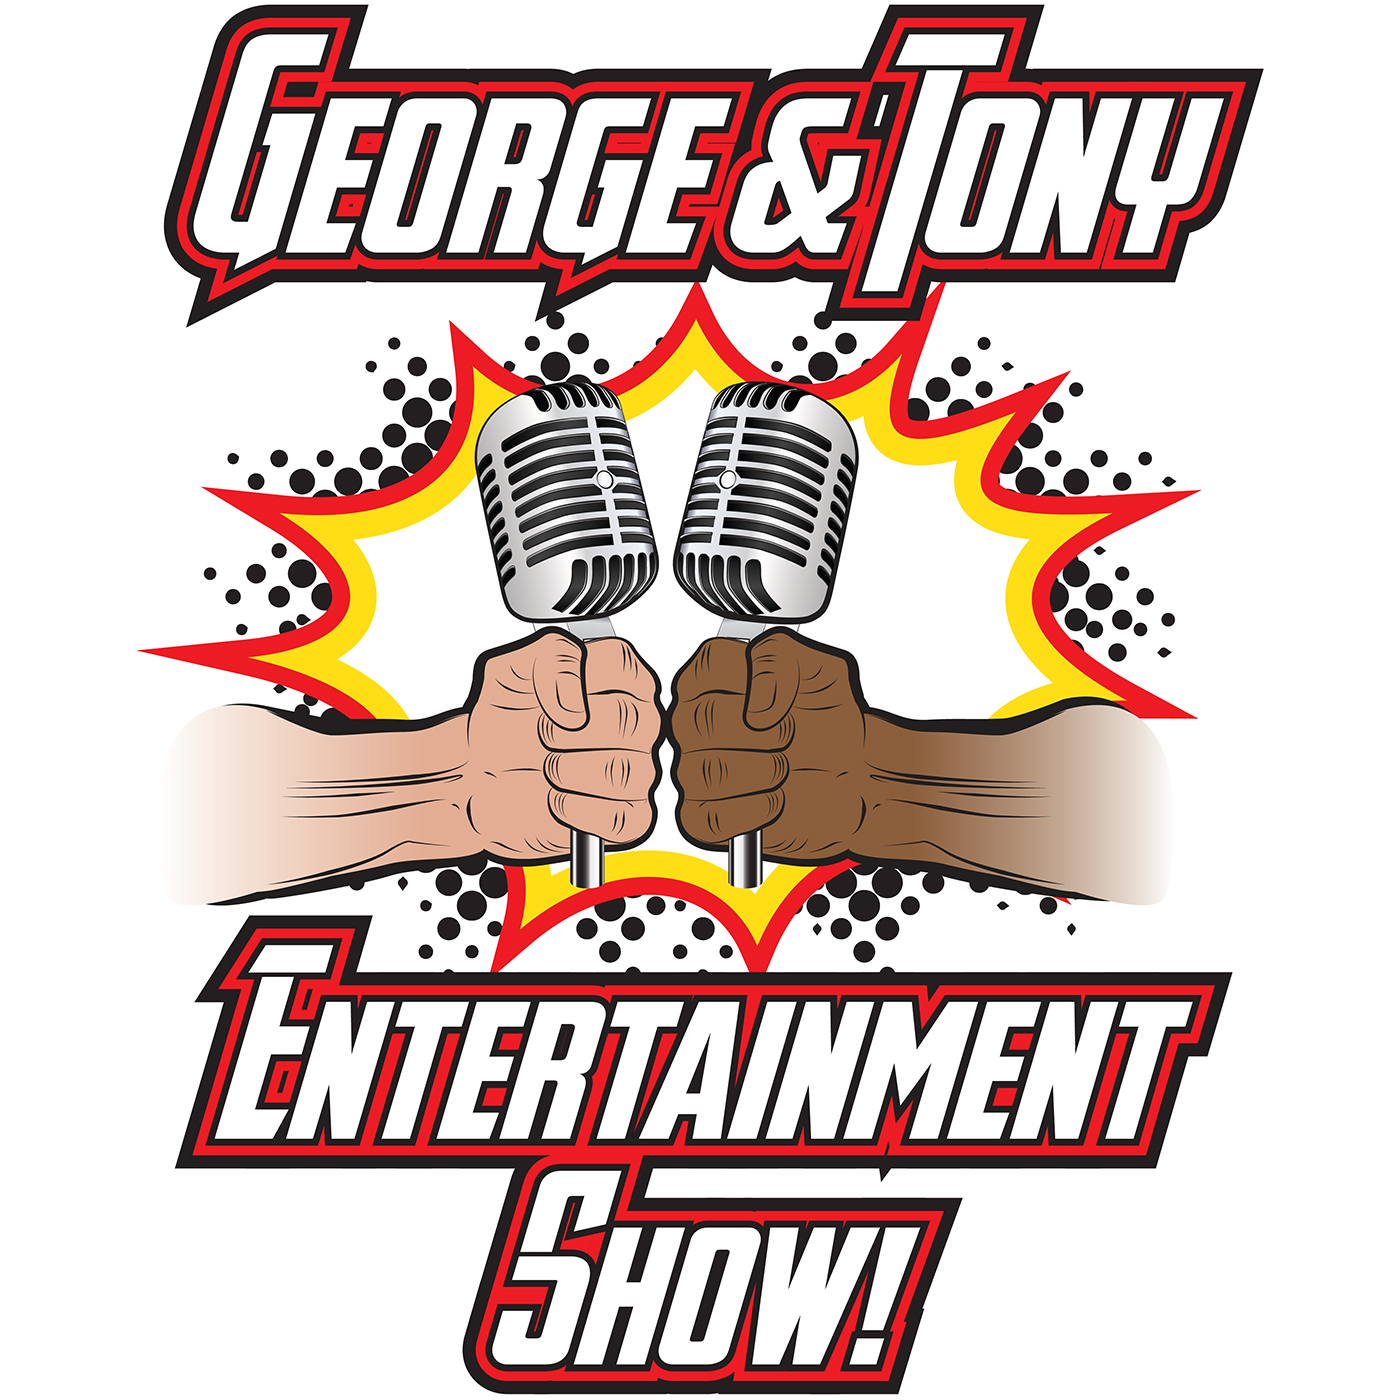 George and Tony Entertainment Show #81